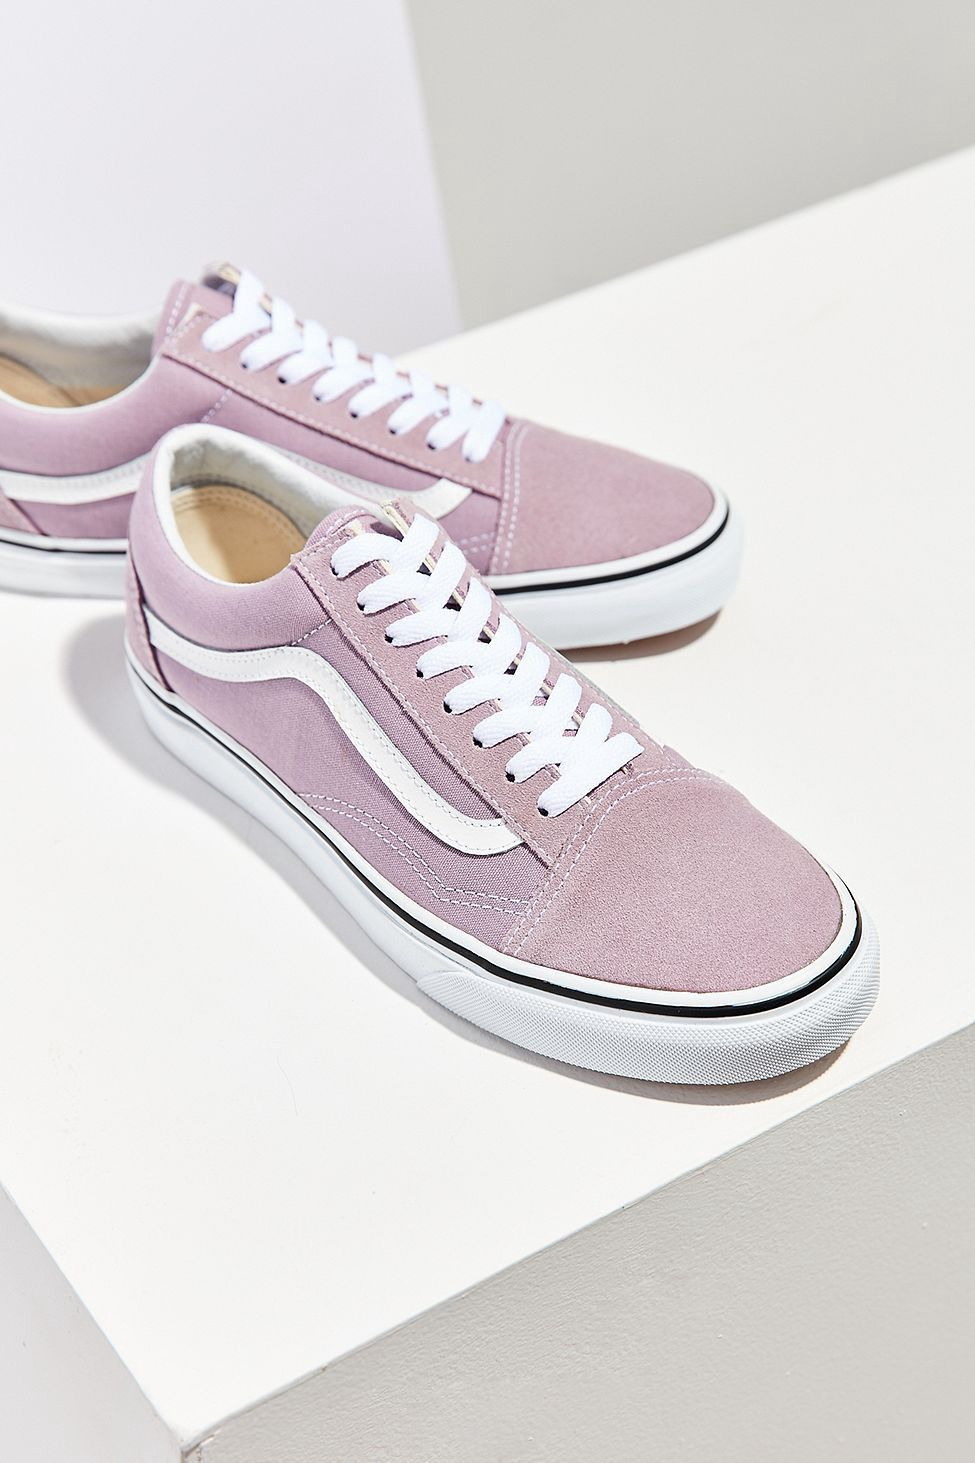 Urban Outfitters Vans Lilac Old Skool Sneaker - W 5/M 3.5 | Lilac ...